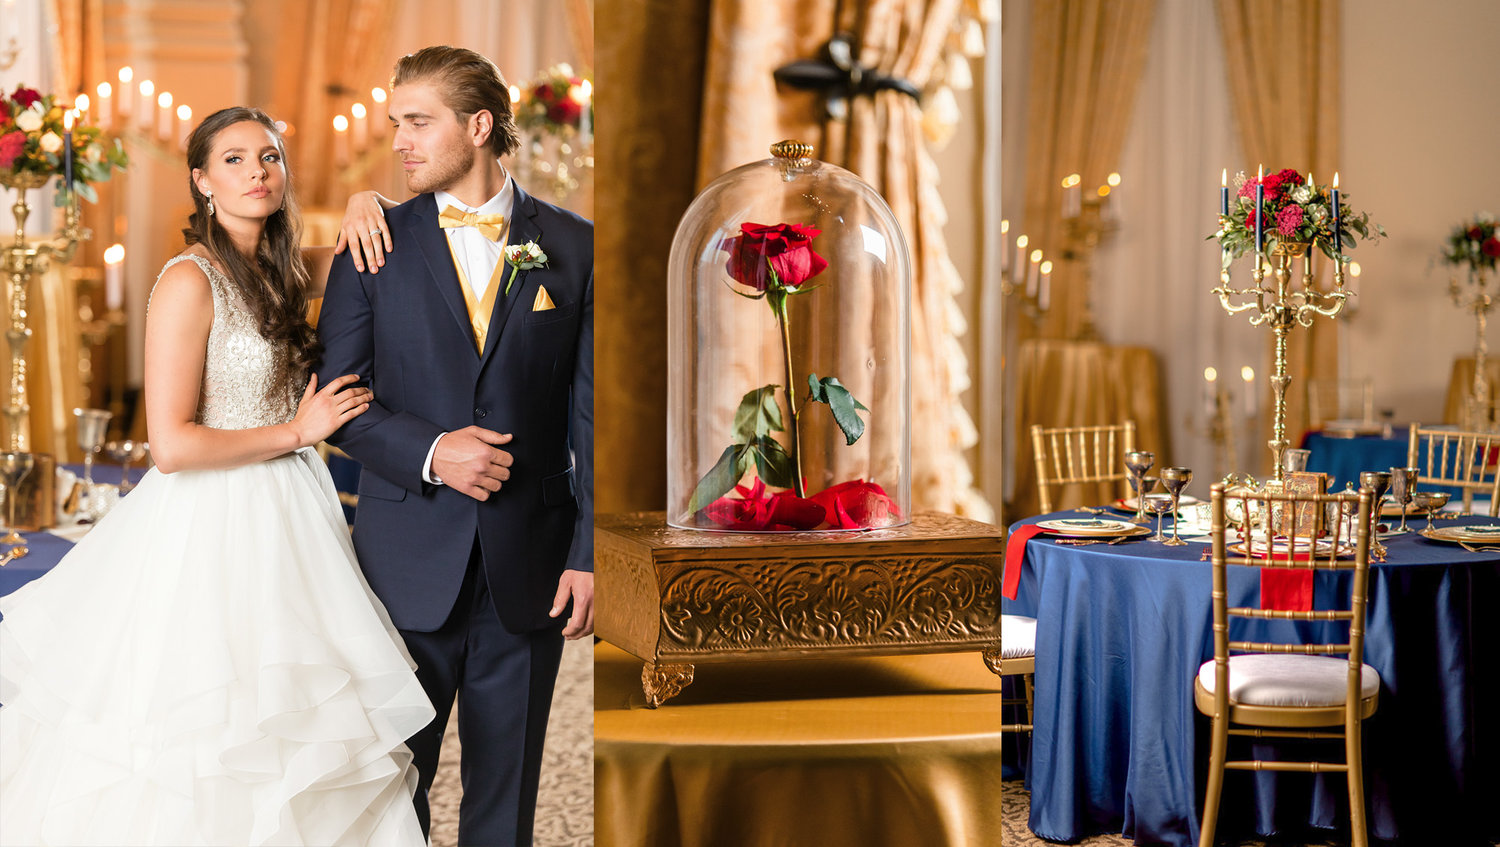 A Tale As Old As Time Beauty And The Beast Wedding Better Together